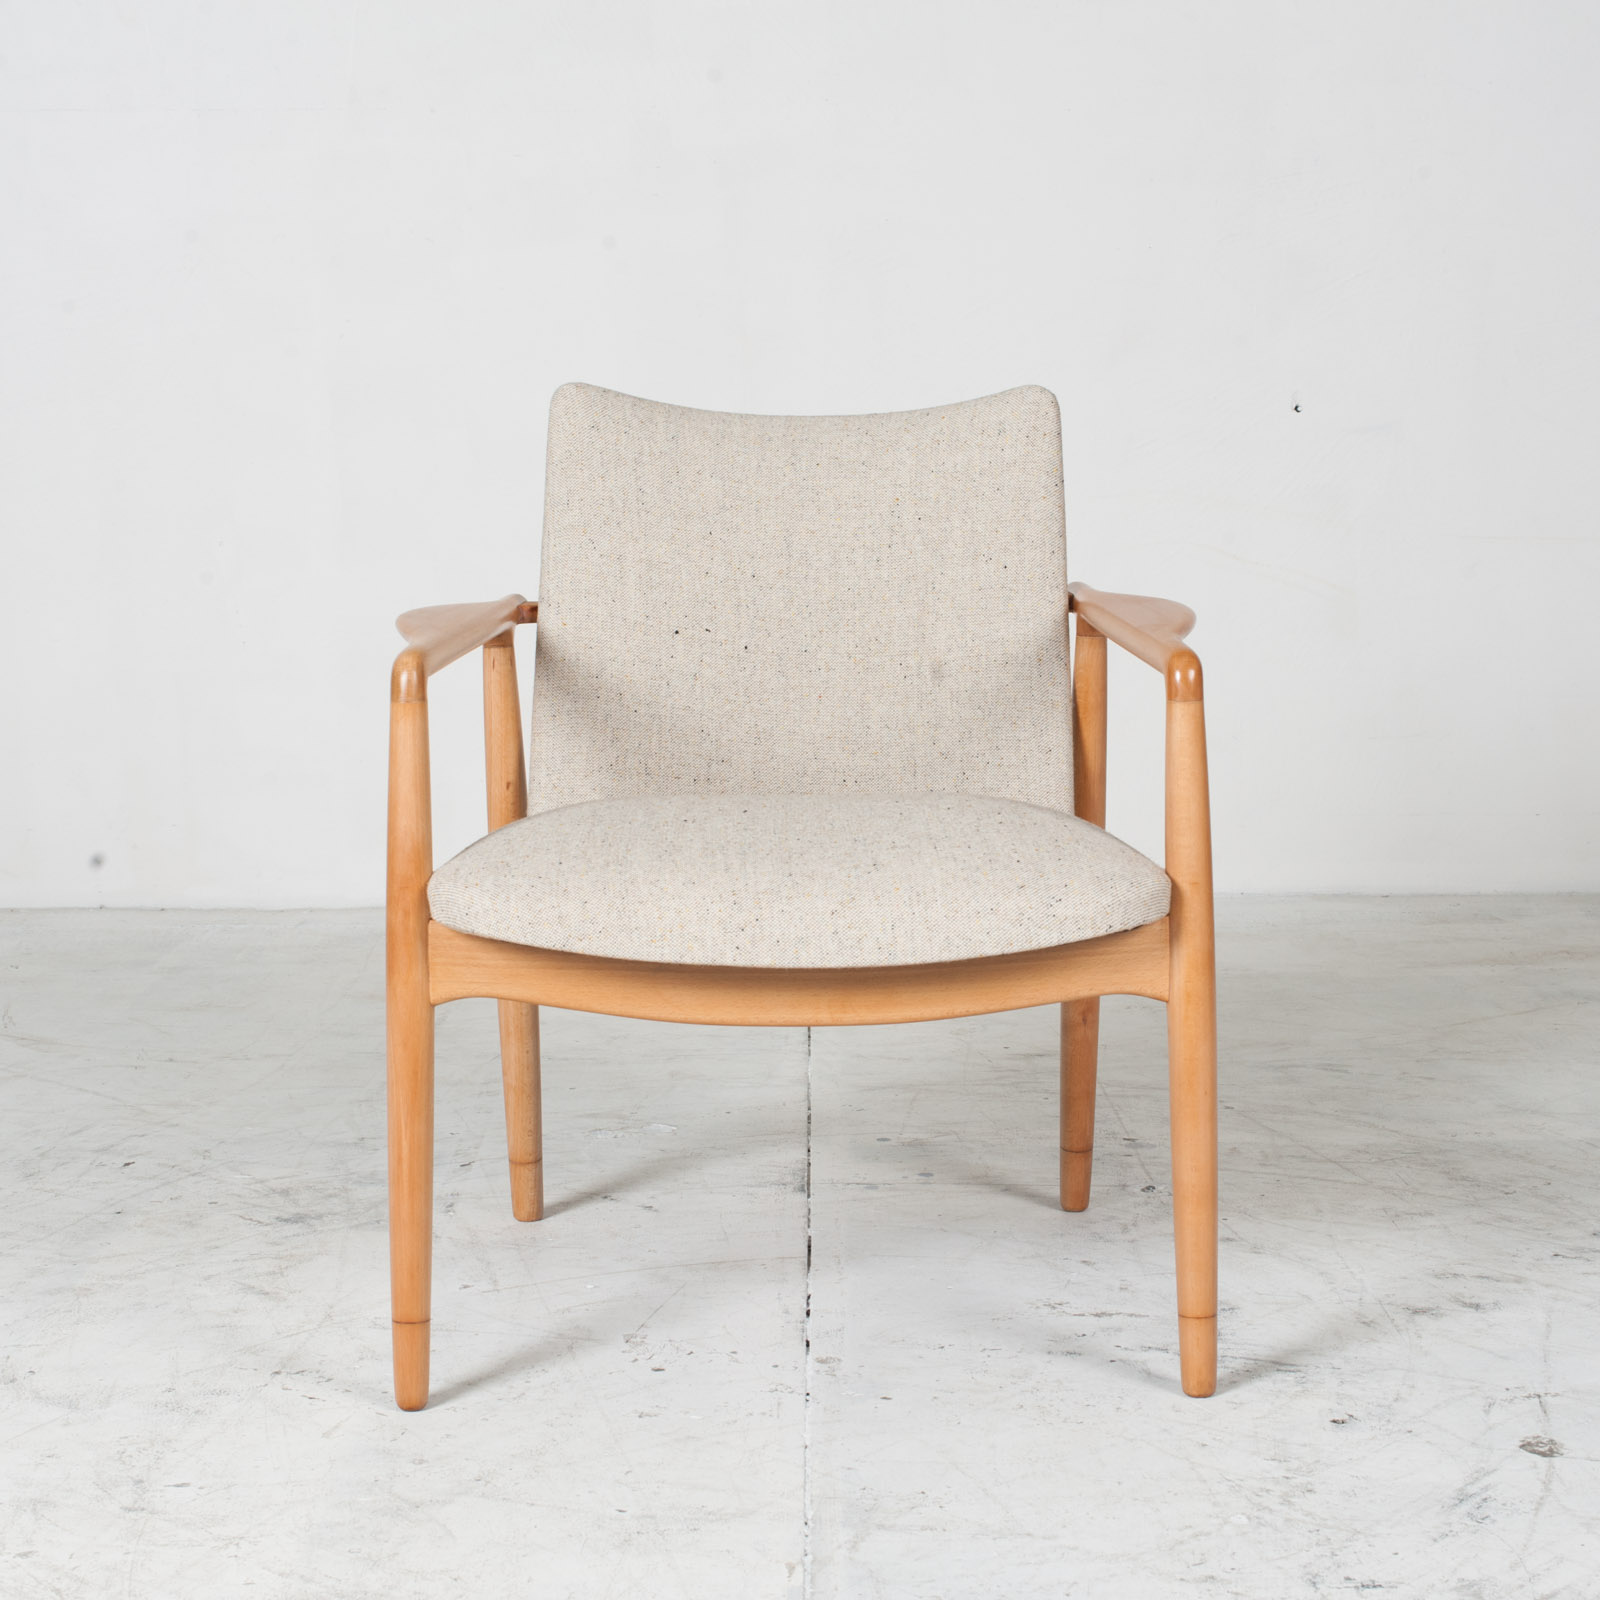 Armchairs In Beech Frame And Light Oatmeal Upholstery 1960s Denmark 01 2